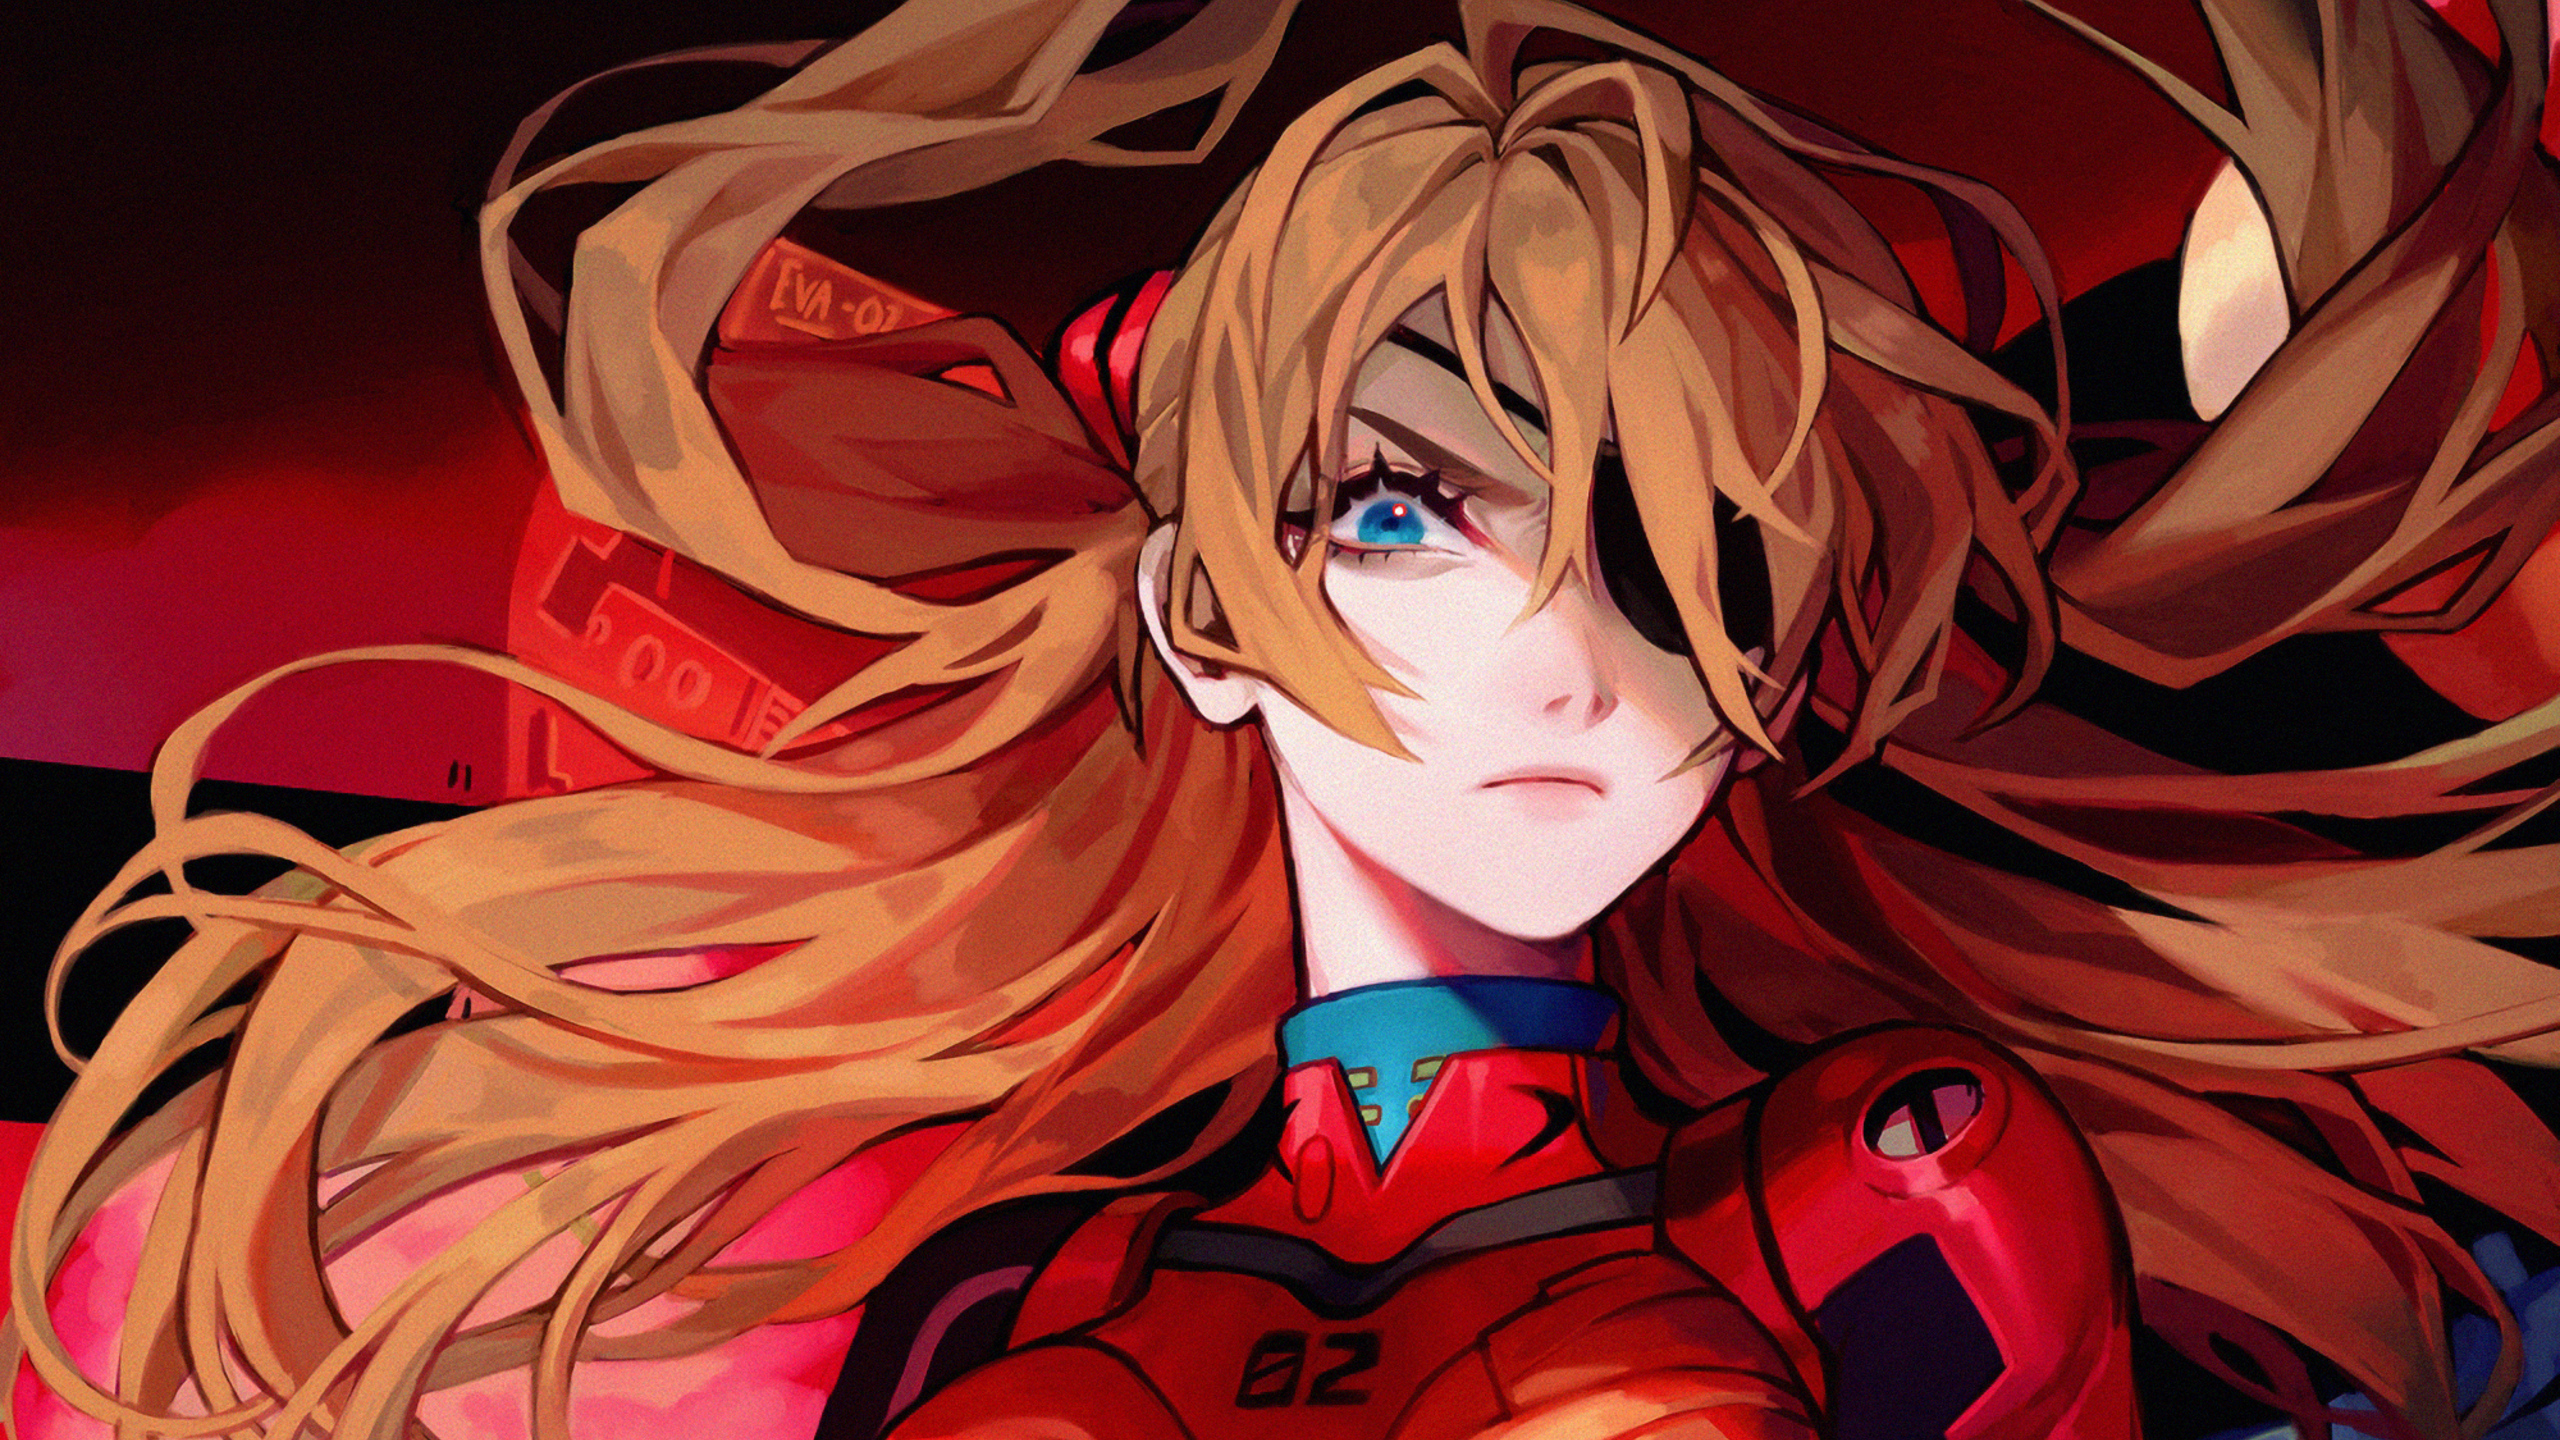 2560x1440 Asuka 1440P Resolution HD 4k Wallpapers, Images ...